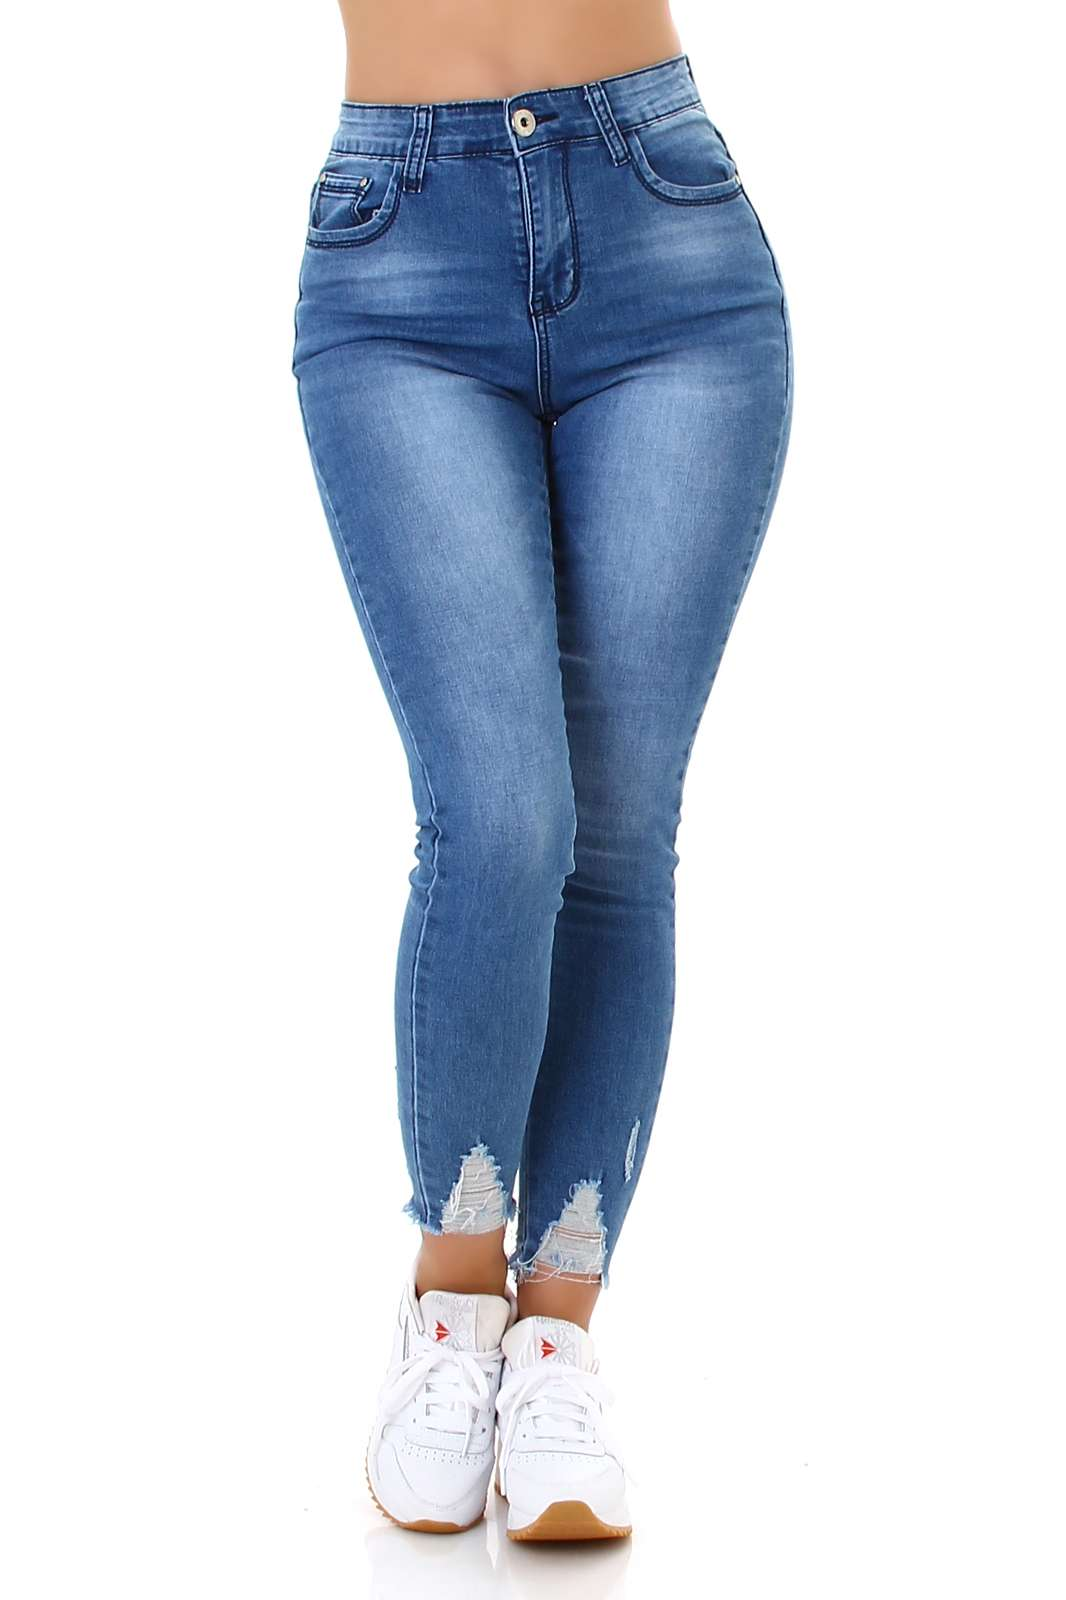 French Cut Jeans Aiana